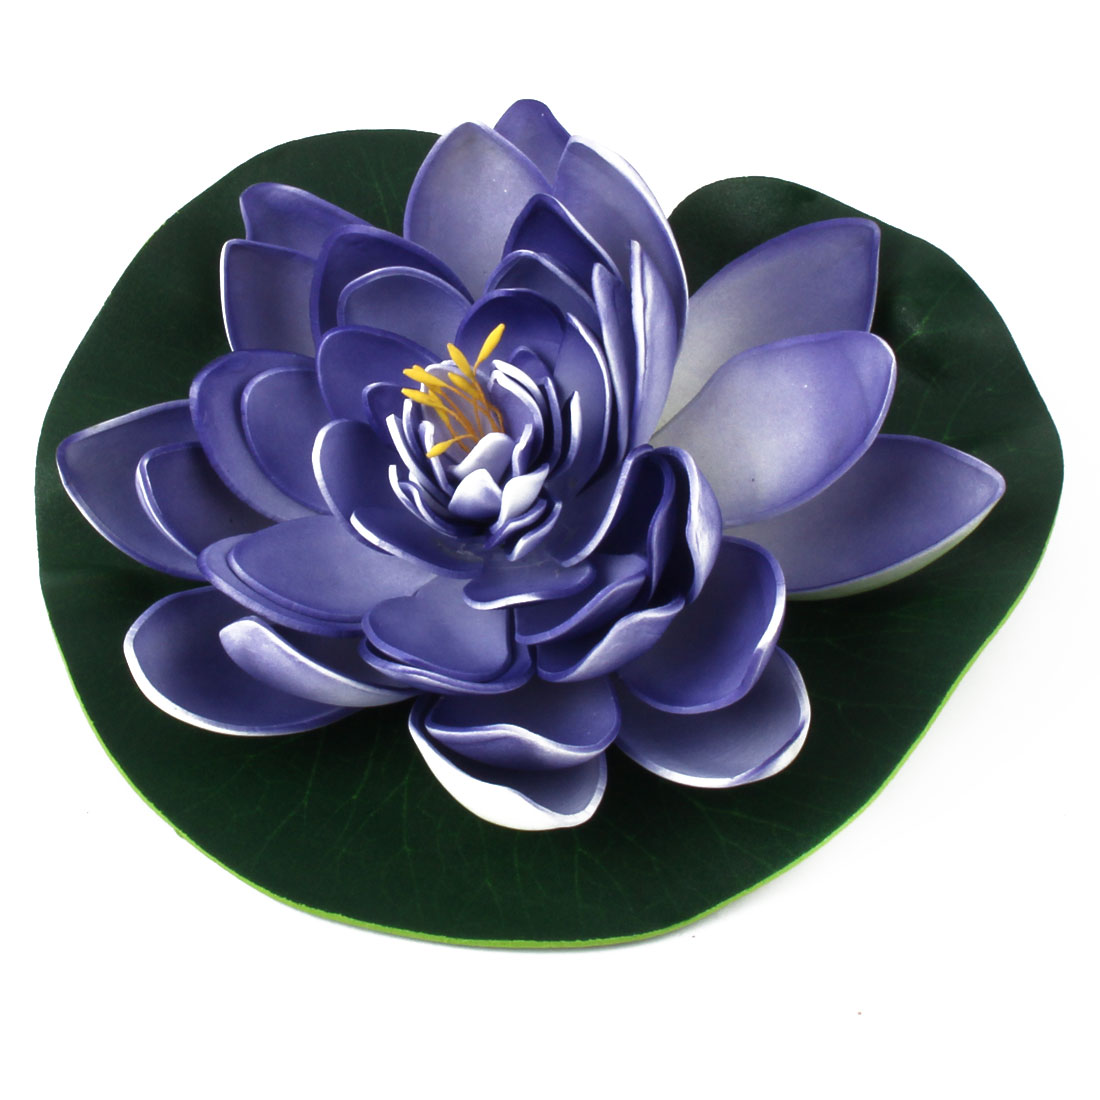 Aquarium Fish Tank Pond Foam Artificial Floating Lotus Flower Ornament Green Purple